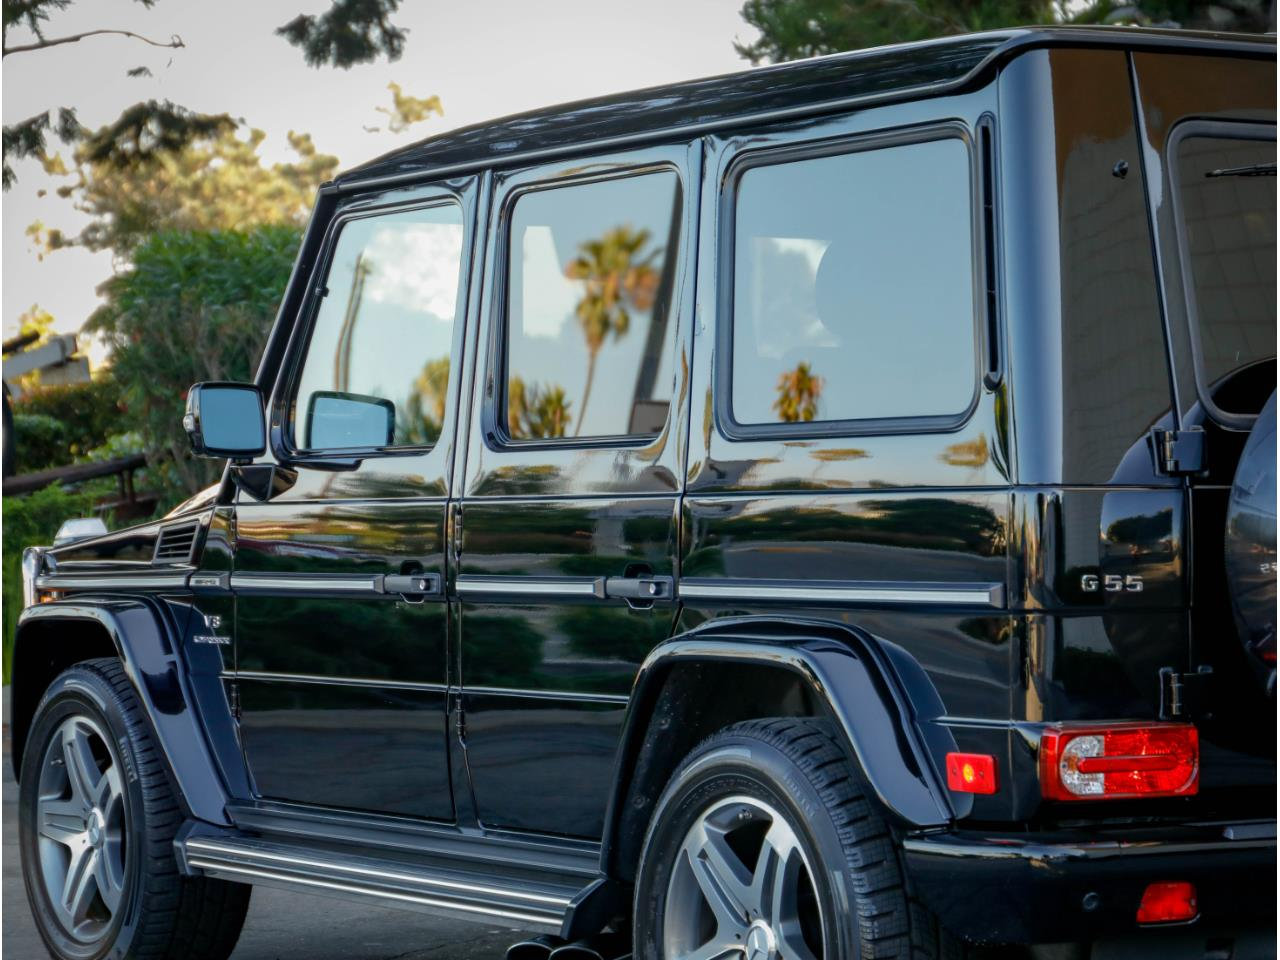 2011 Mercedes-Benz G550 for sale in Marina Del Rey, CA – photo 19